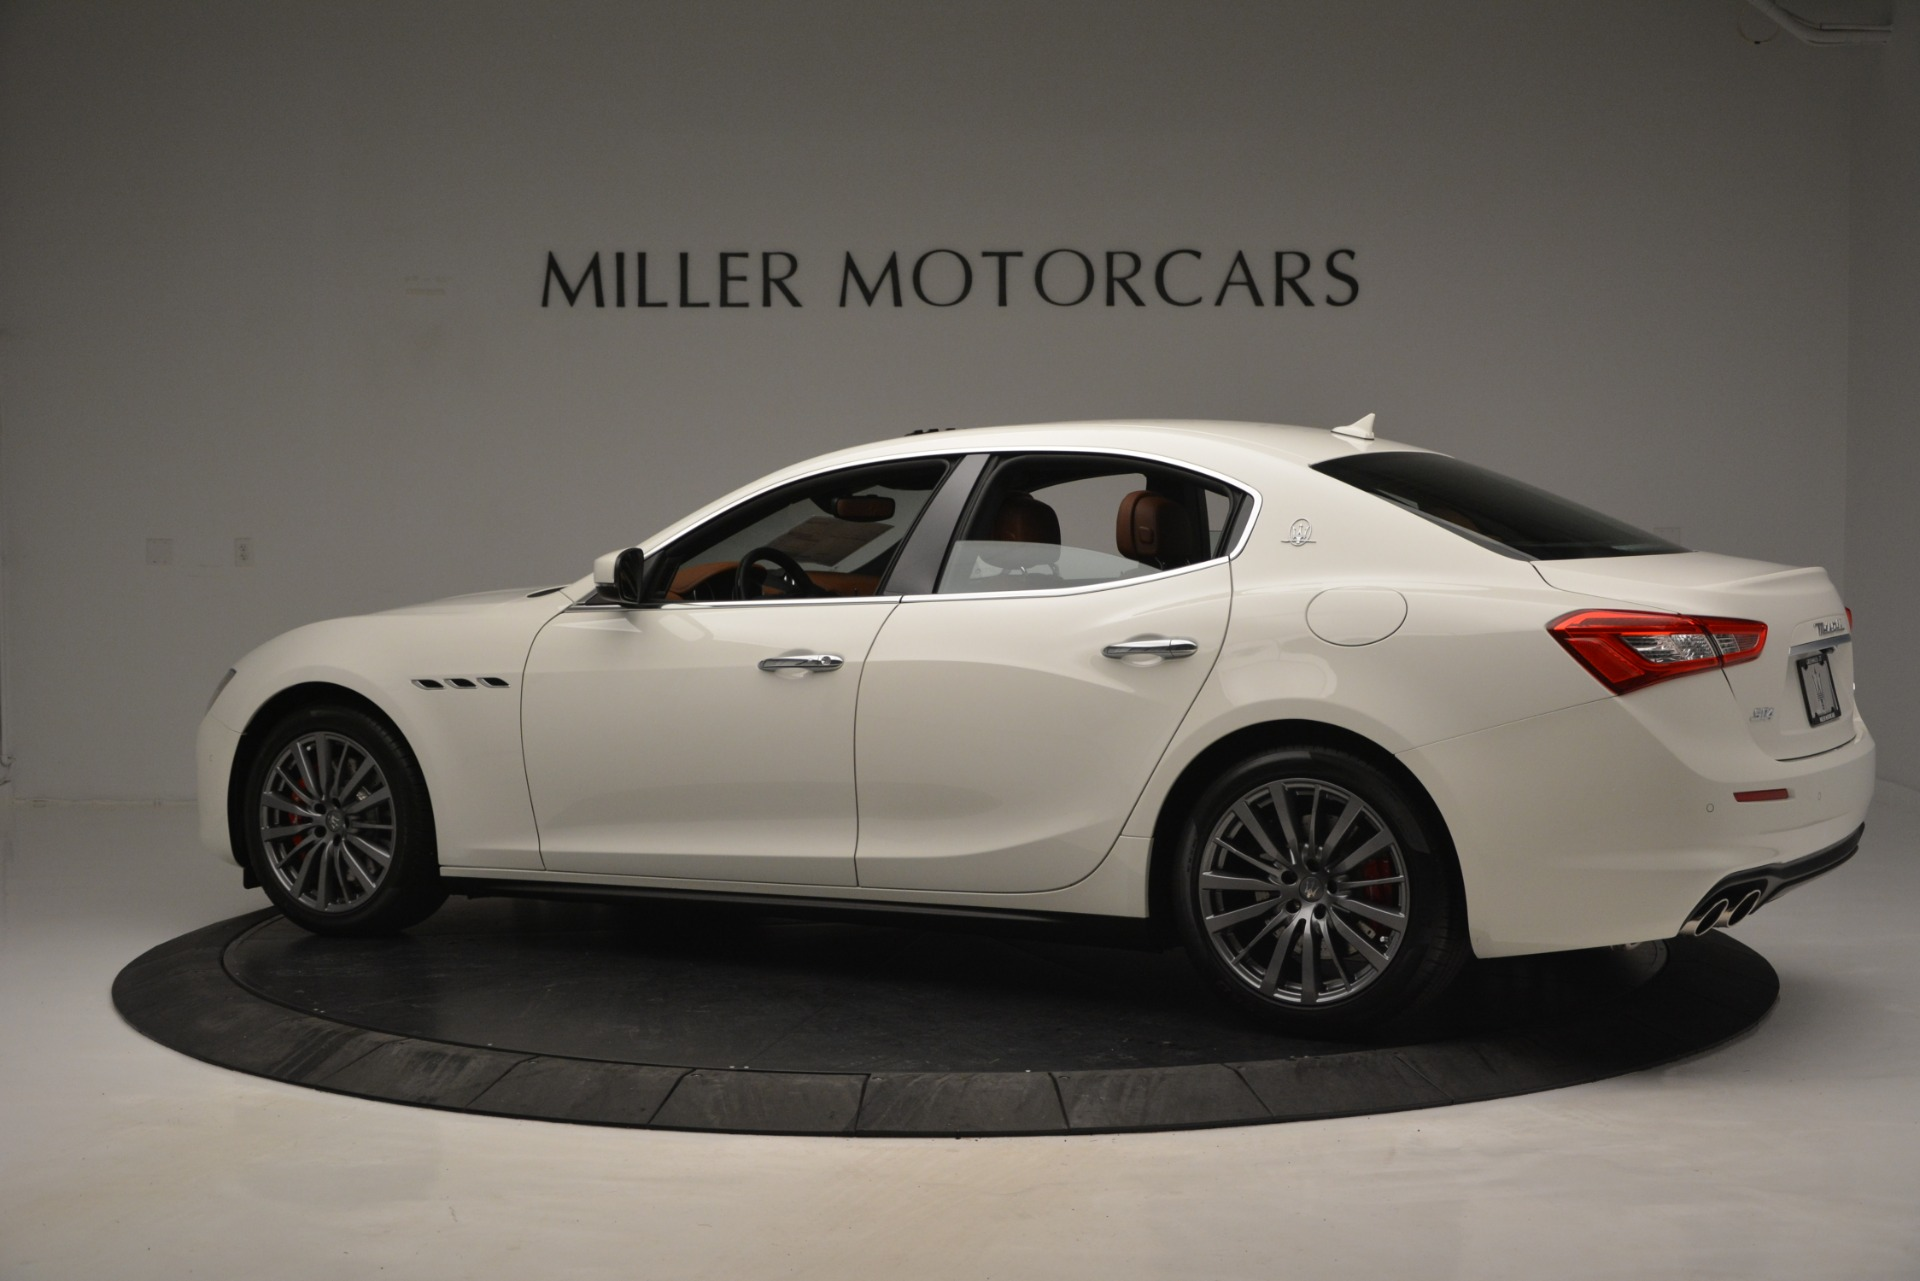 New 2019 Maserati Ghibli S Q4 For Sale In Greenwich, CT 2795_p5